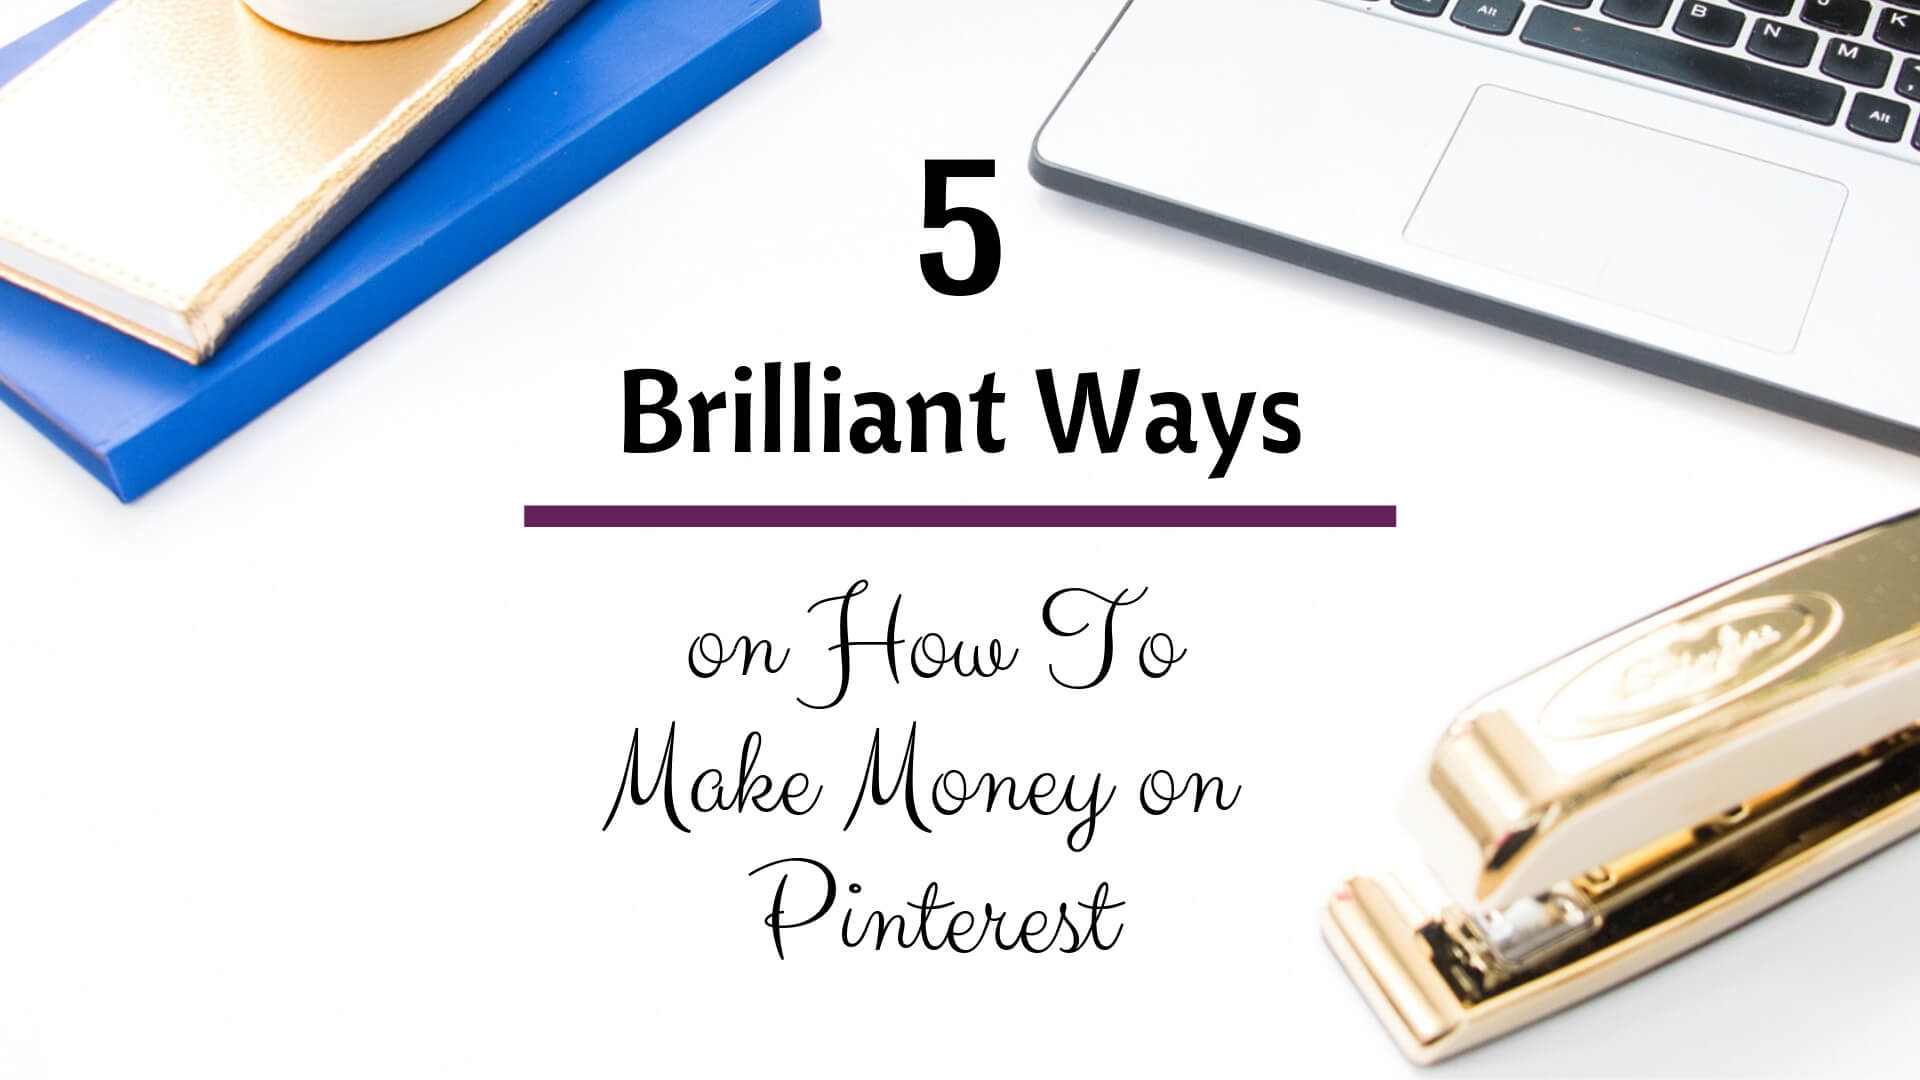 Want To Make Money on Pinterest_ Here are 5 Brilliant Ways